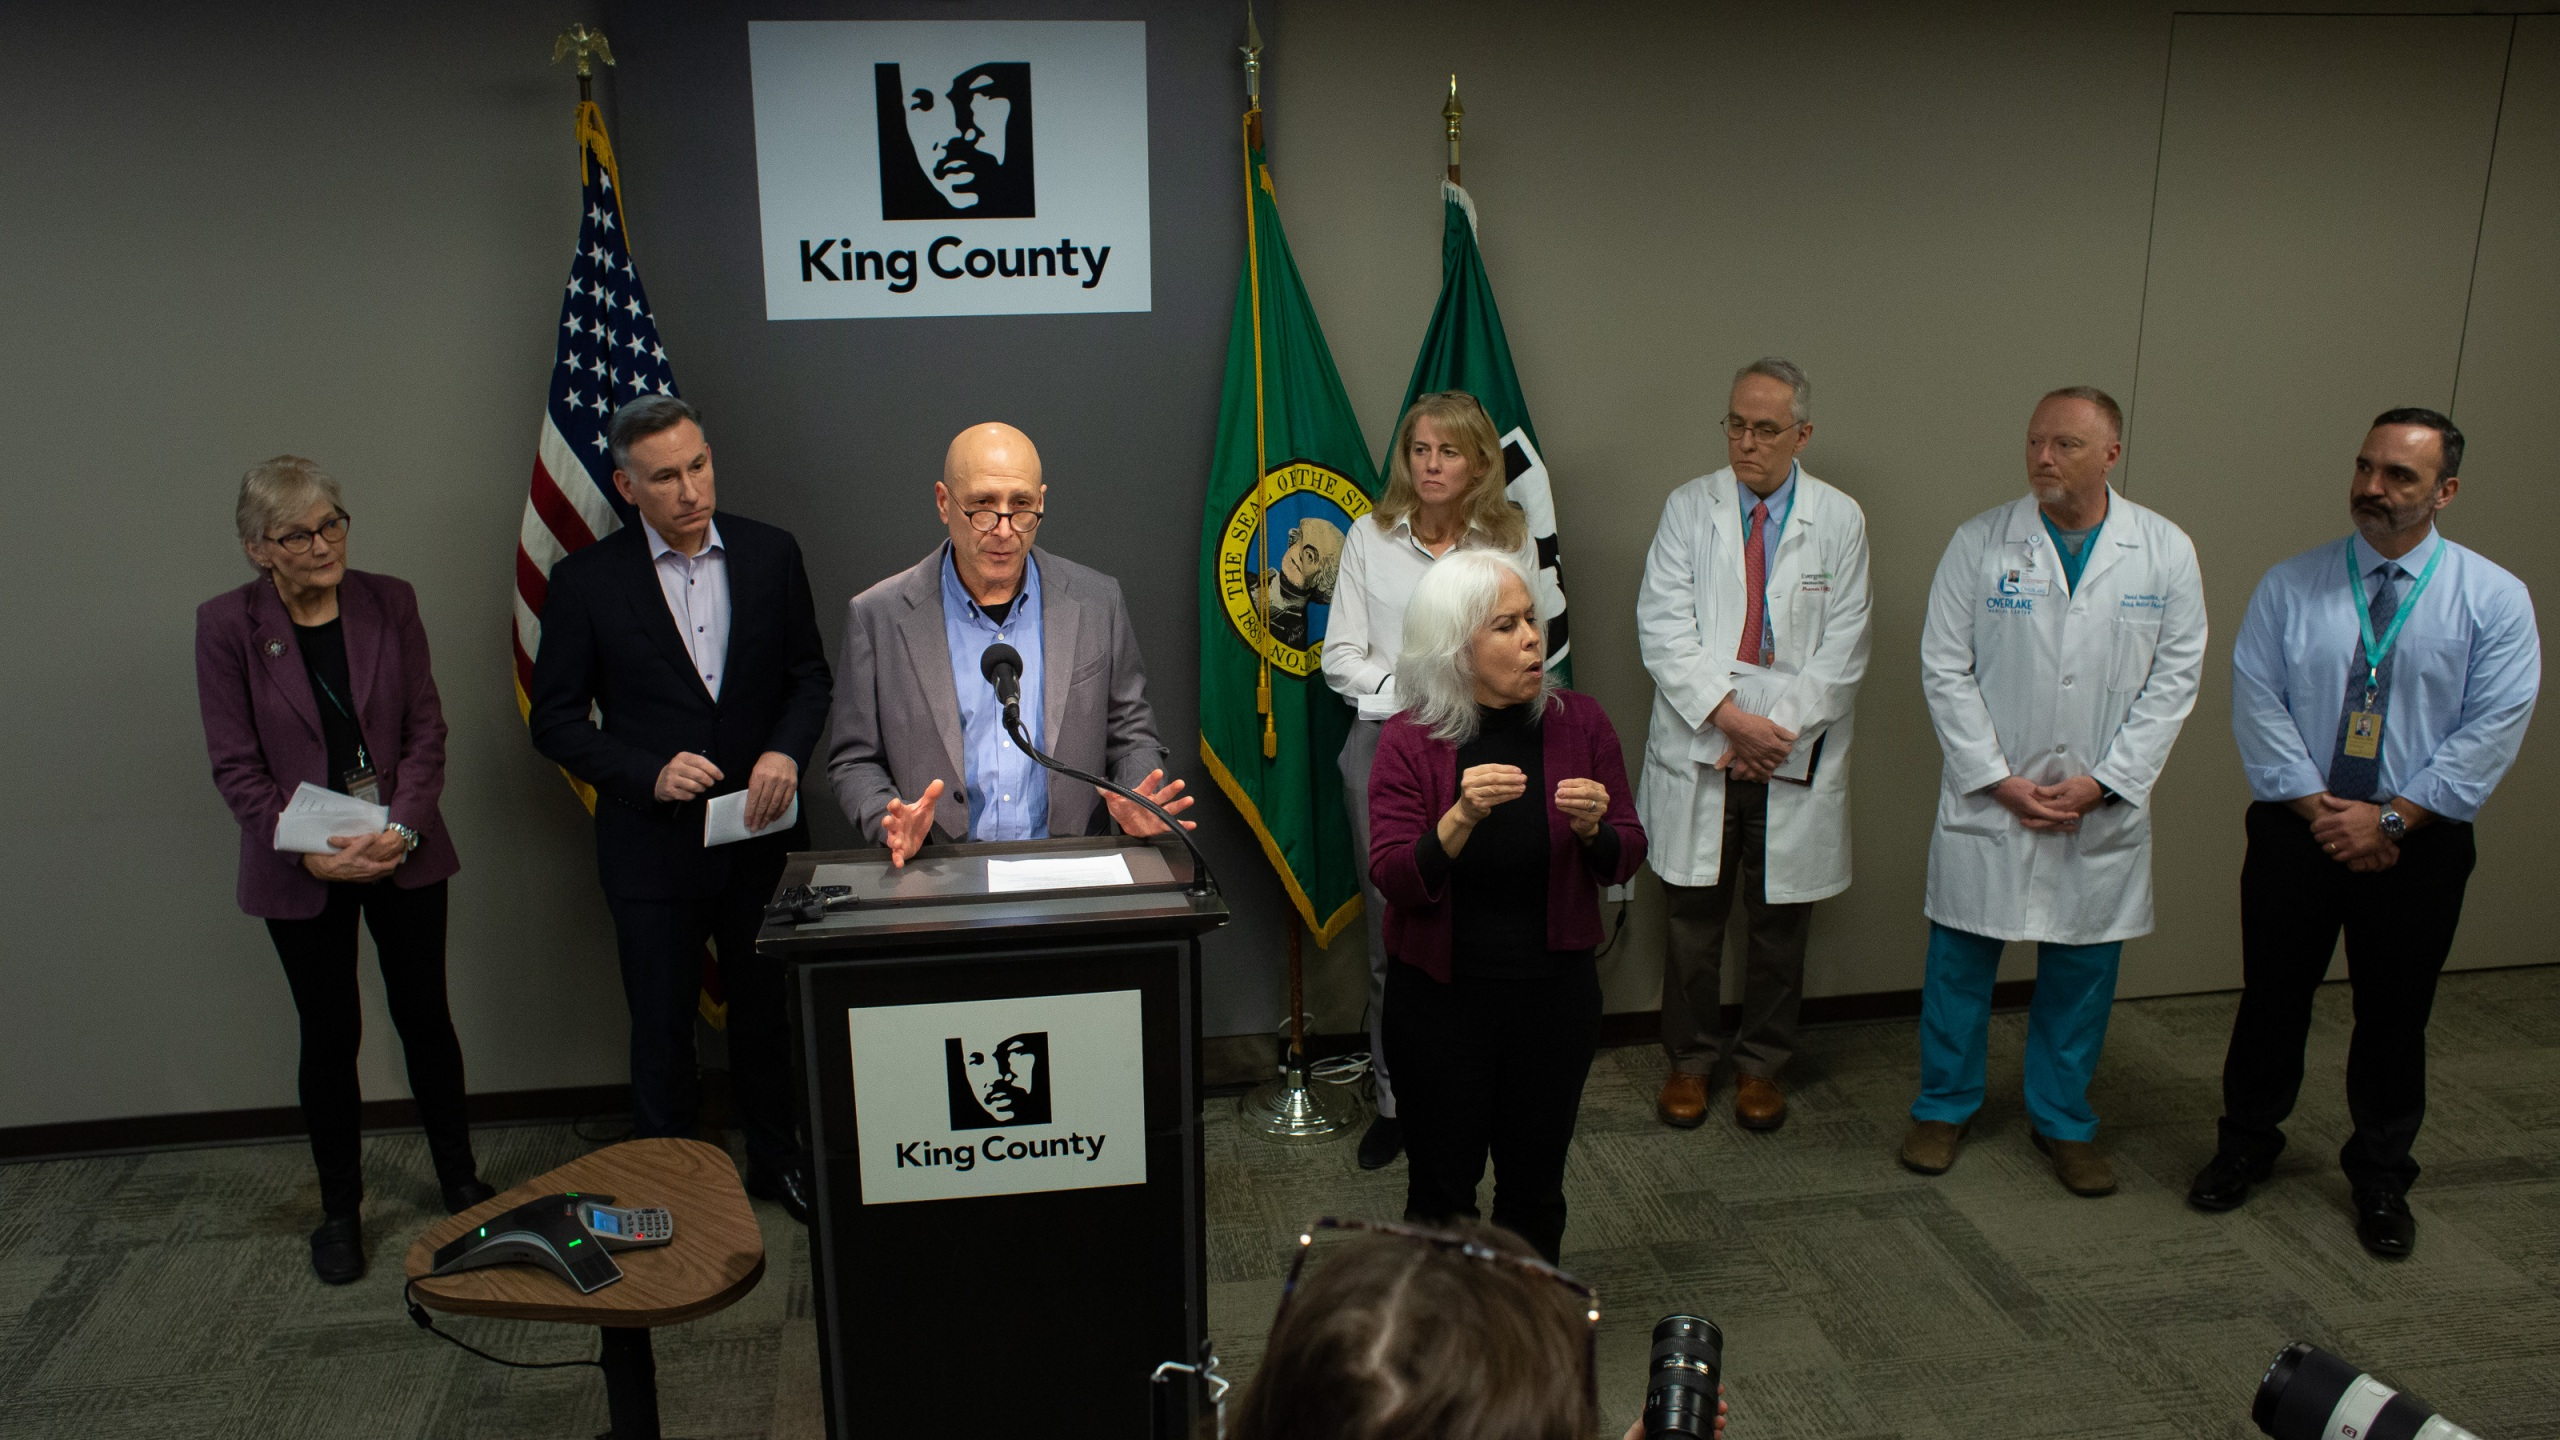 Dr. Jeff Duchin, a health officer with Seattle and King County Public Health, speaks during a press conference at Seattle and King County Public Health on Feb. 29, 2020 in Seattle, Washington. (David Ryder/Getty Images)